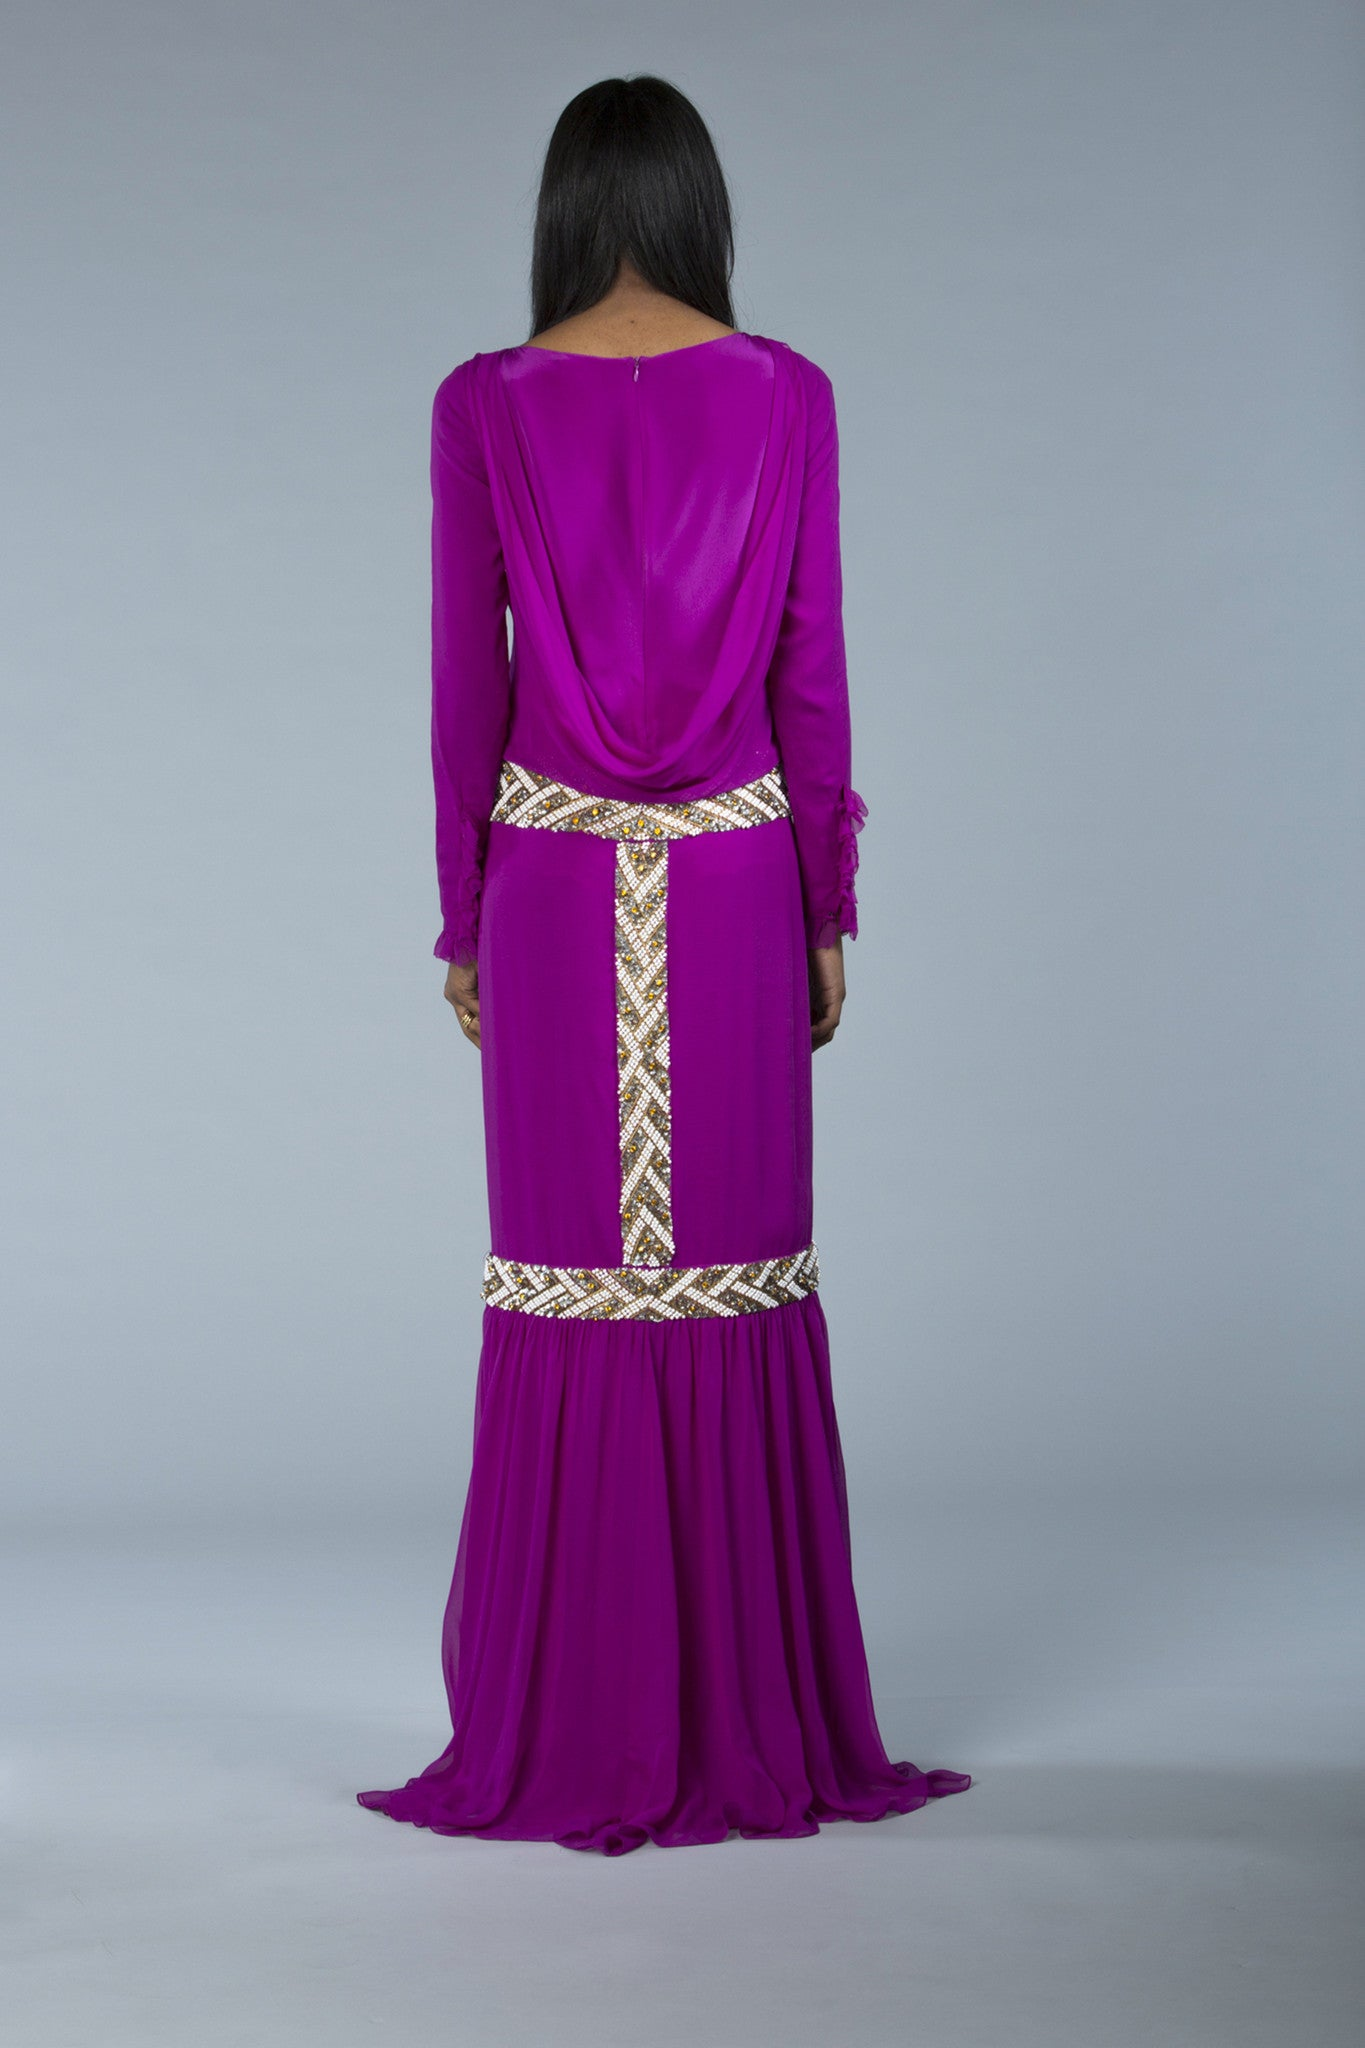 hand-embroidered, silk chiffon, draped (the cowl back), slightly dropped waist column gown